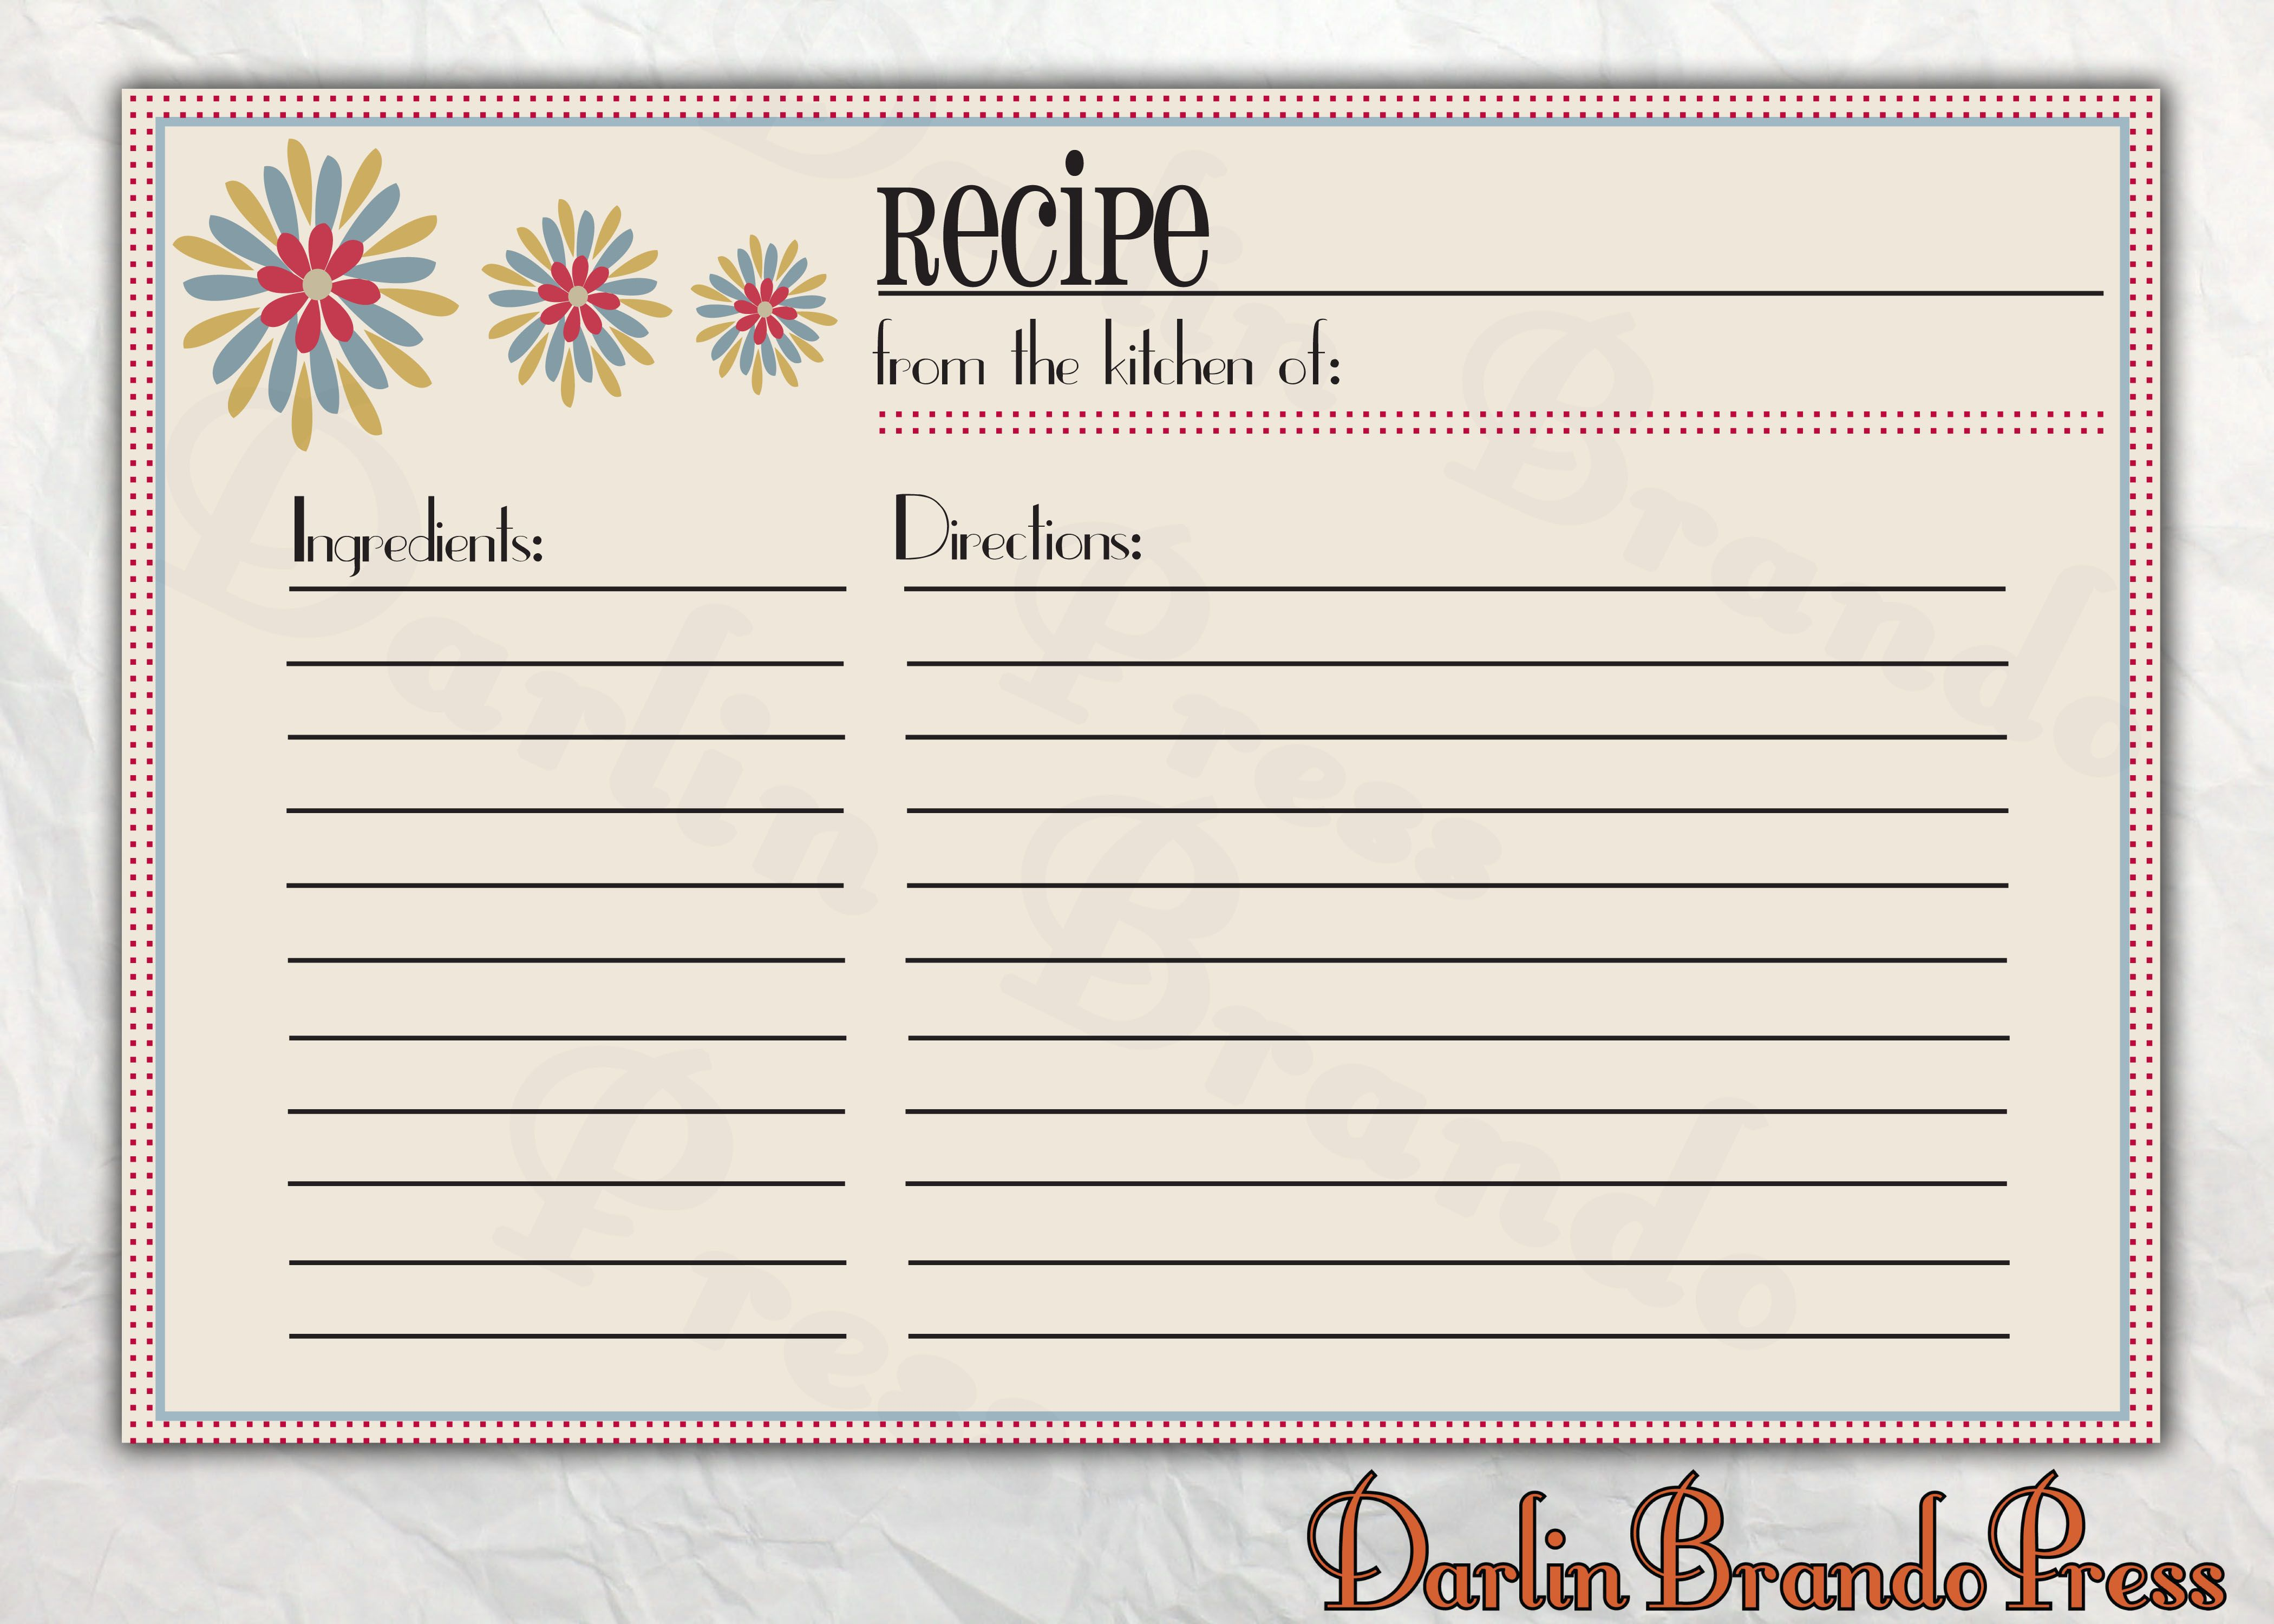 005 Fascinating Free Recipe Template For Word Highest Quality  Book Editable Card Microsoft 4x6 PageFull